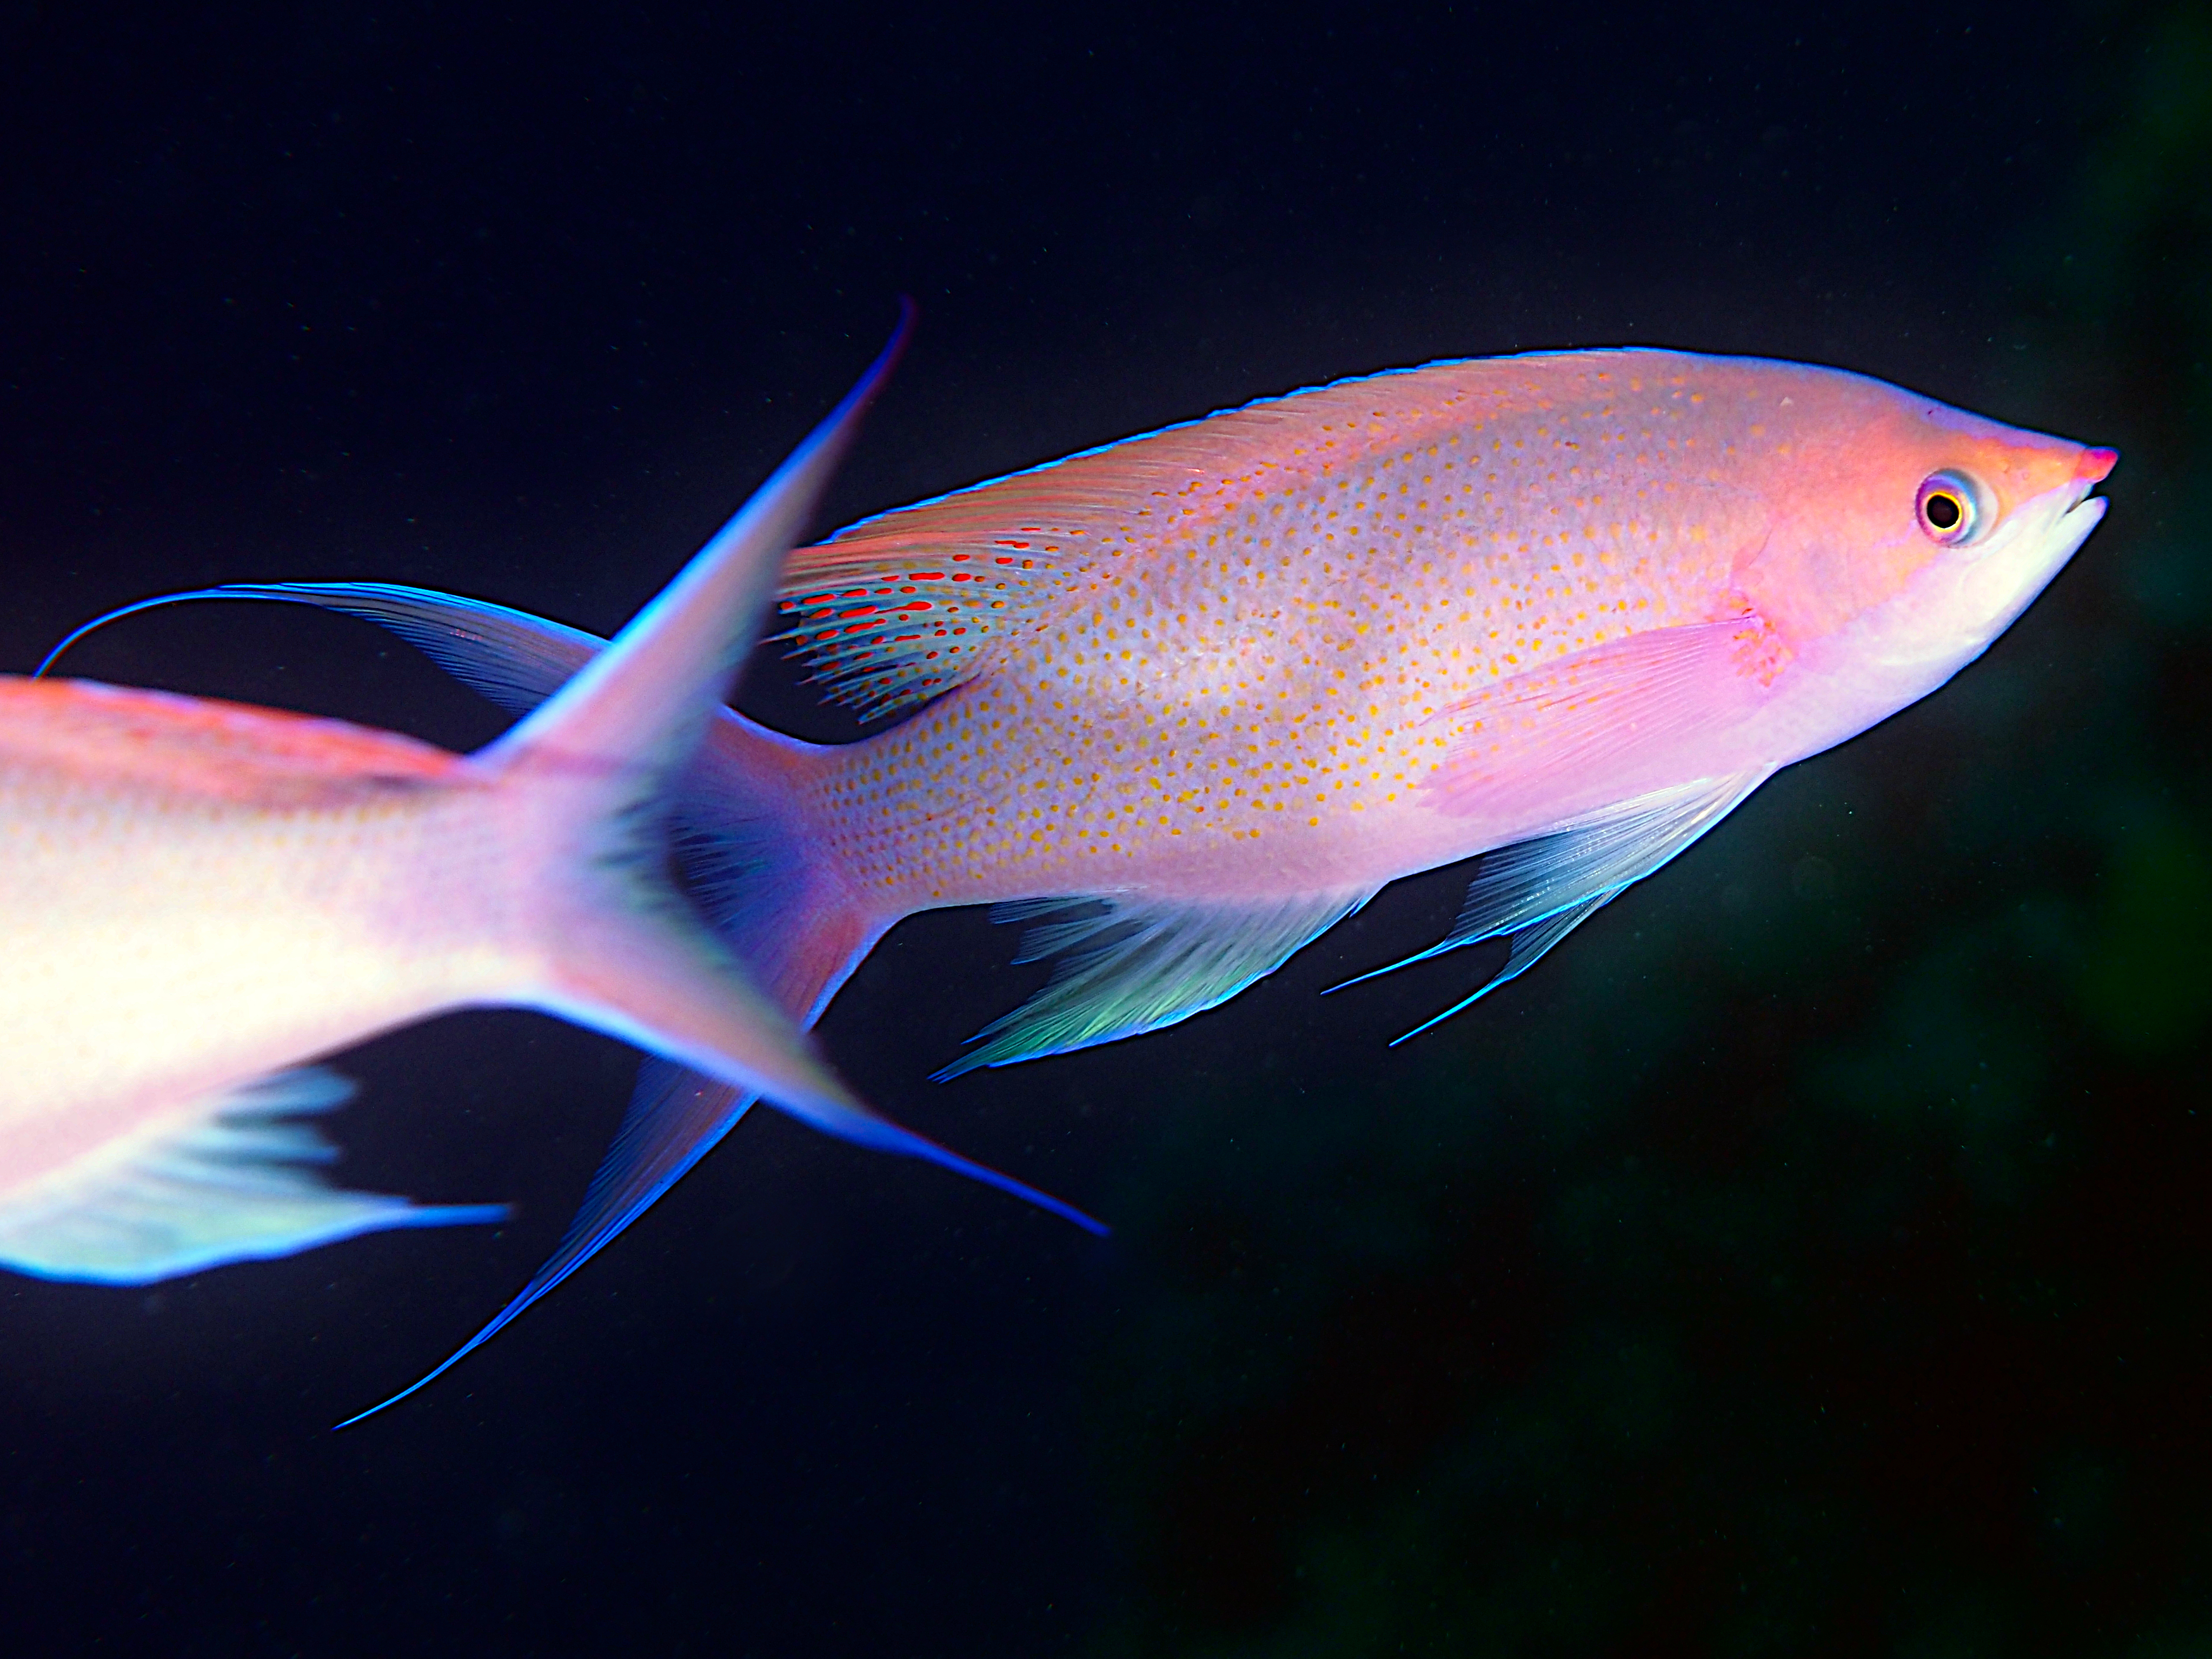 Purple Queen Anthias - Pseudanthias pascalus